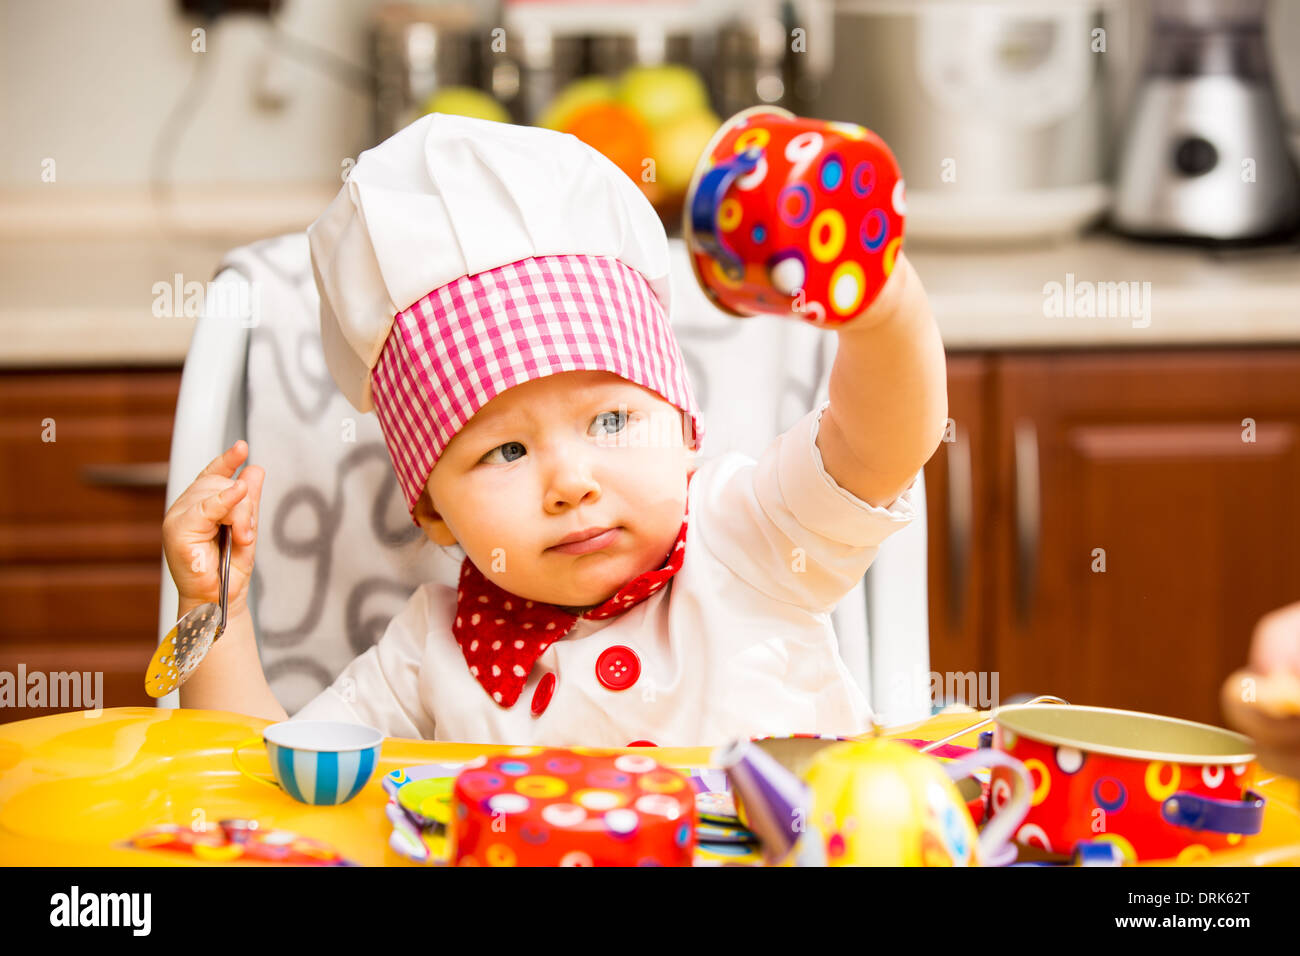 7e24c5fb2fb Baby cook girl wearing chef hat with utensils on kitchen. Use it for a child